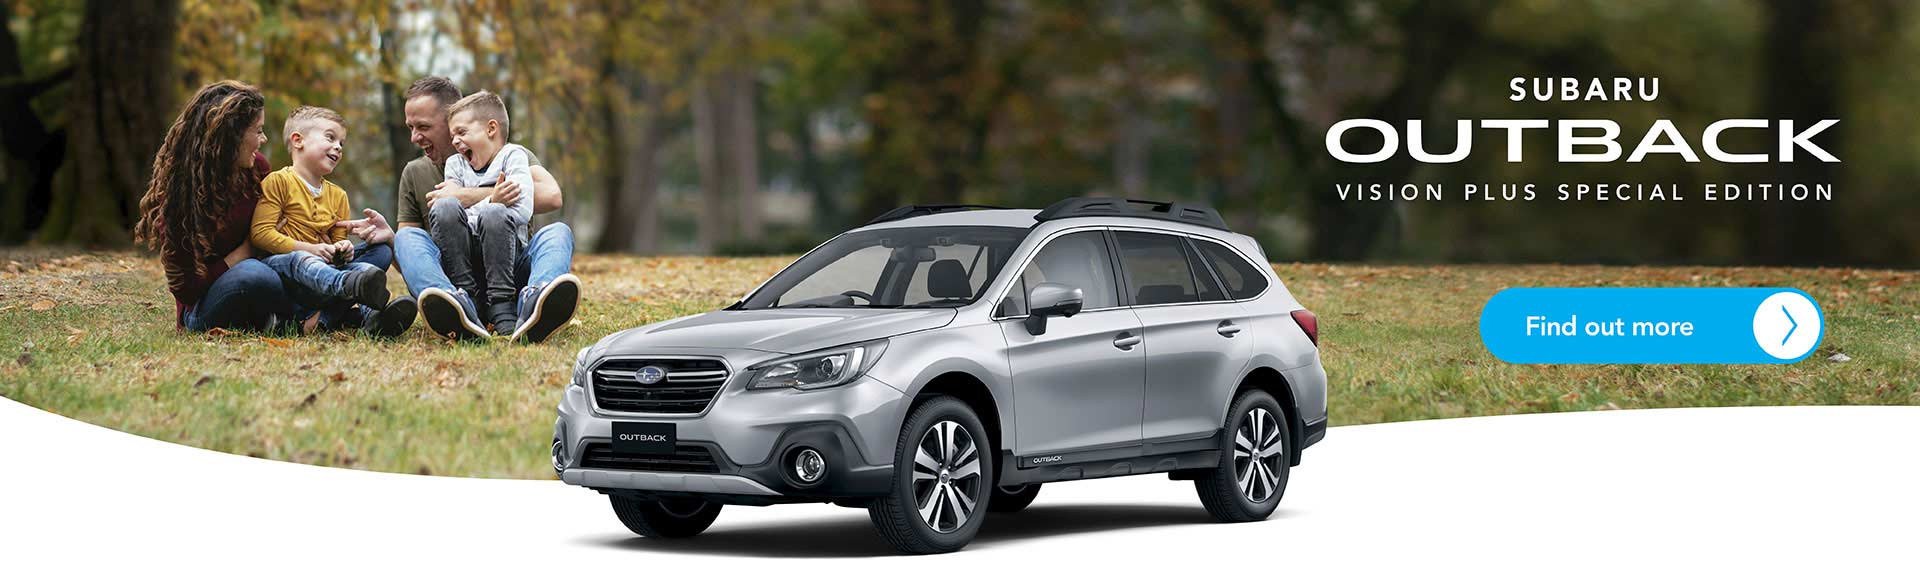 Subaru Outback Vision Assist Edition